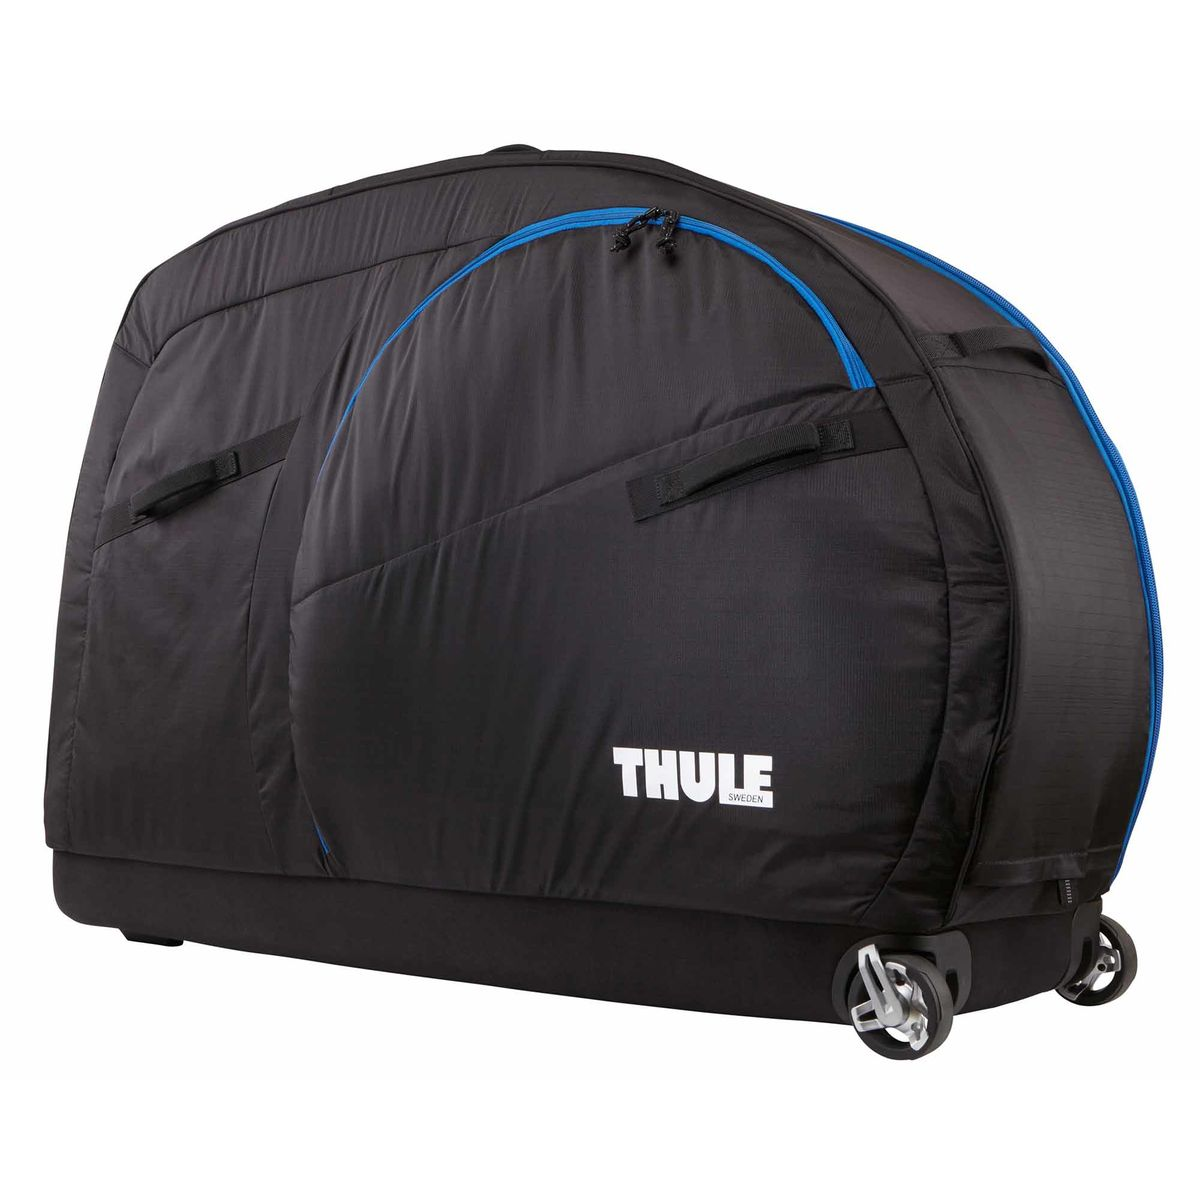 Thule RoundTrip Traveler softshell bike bag | Cykelkuffert